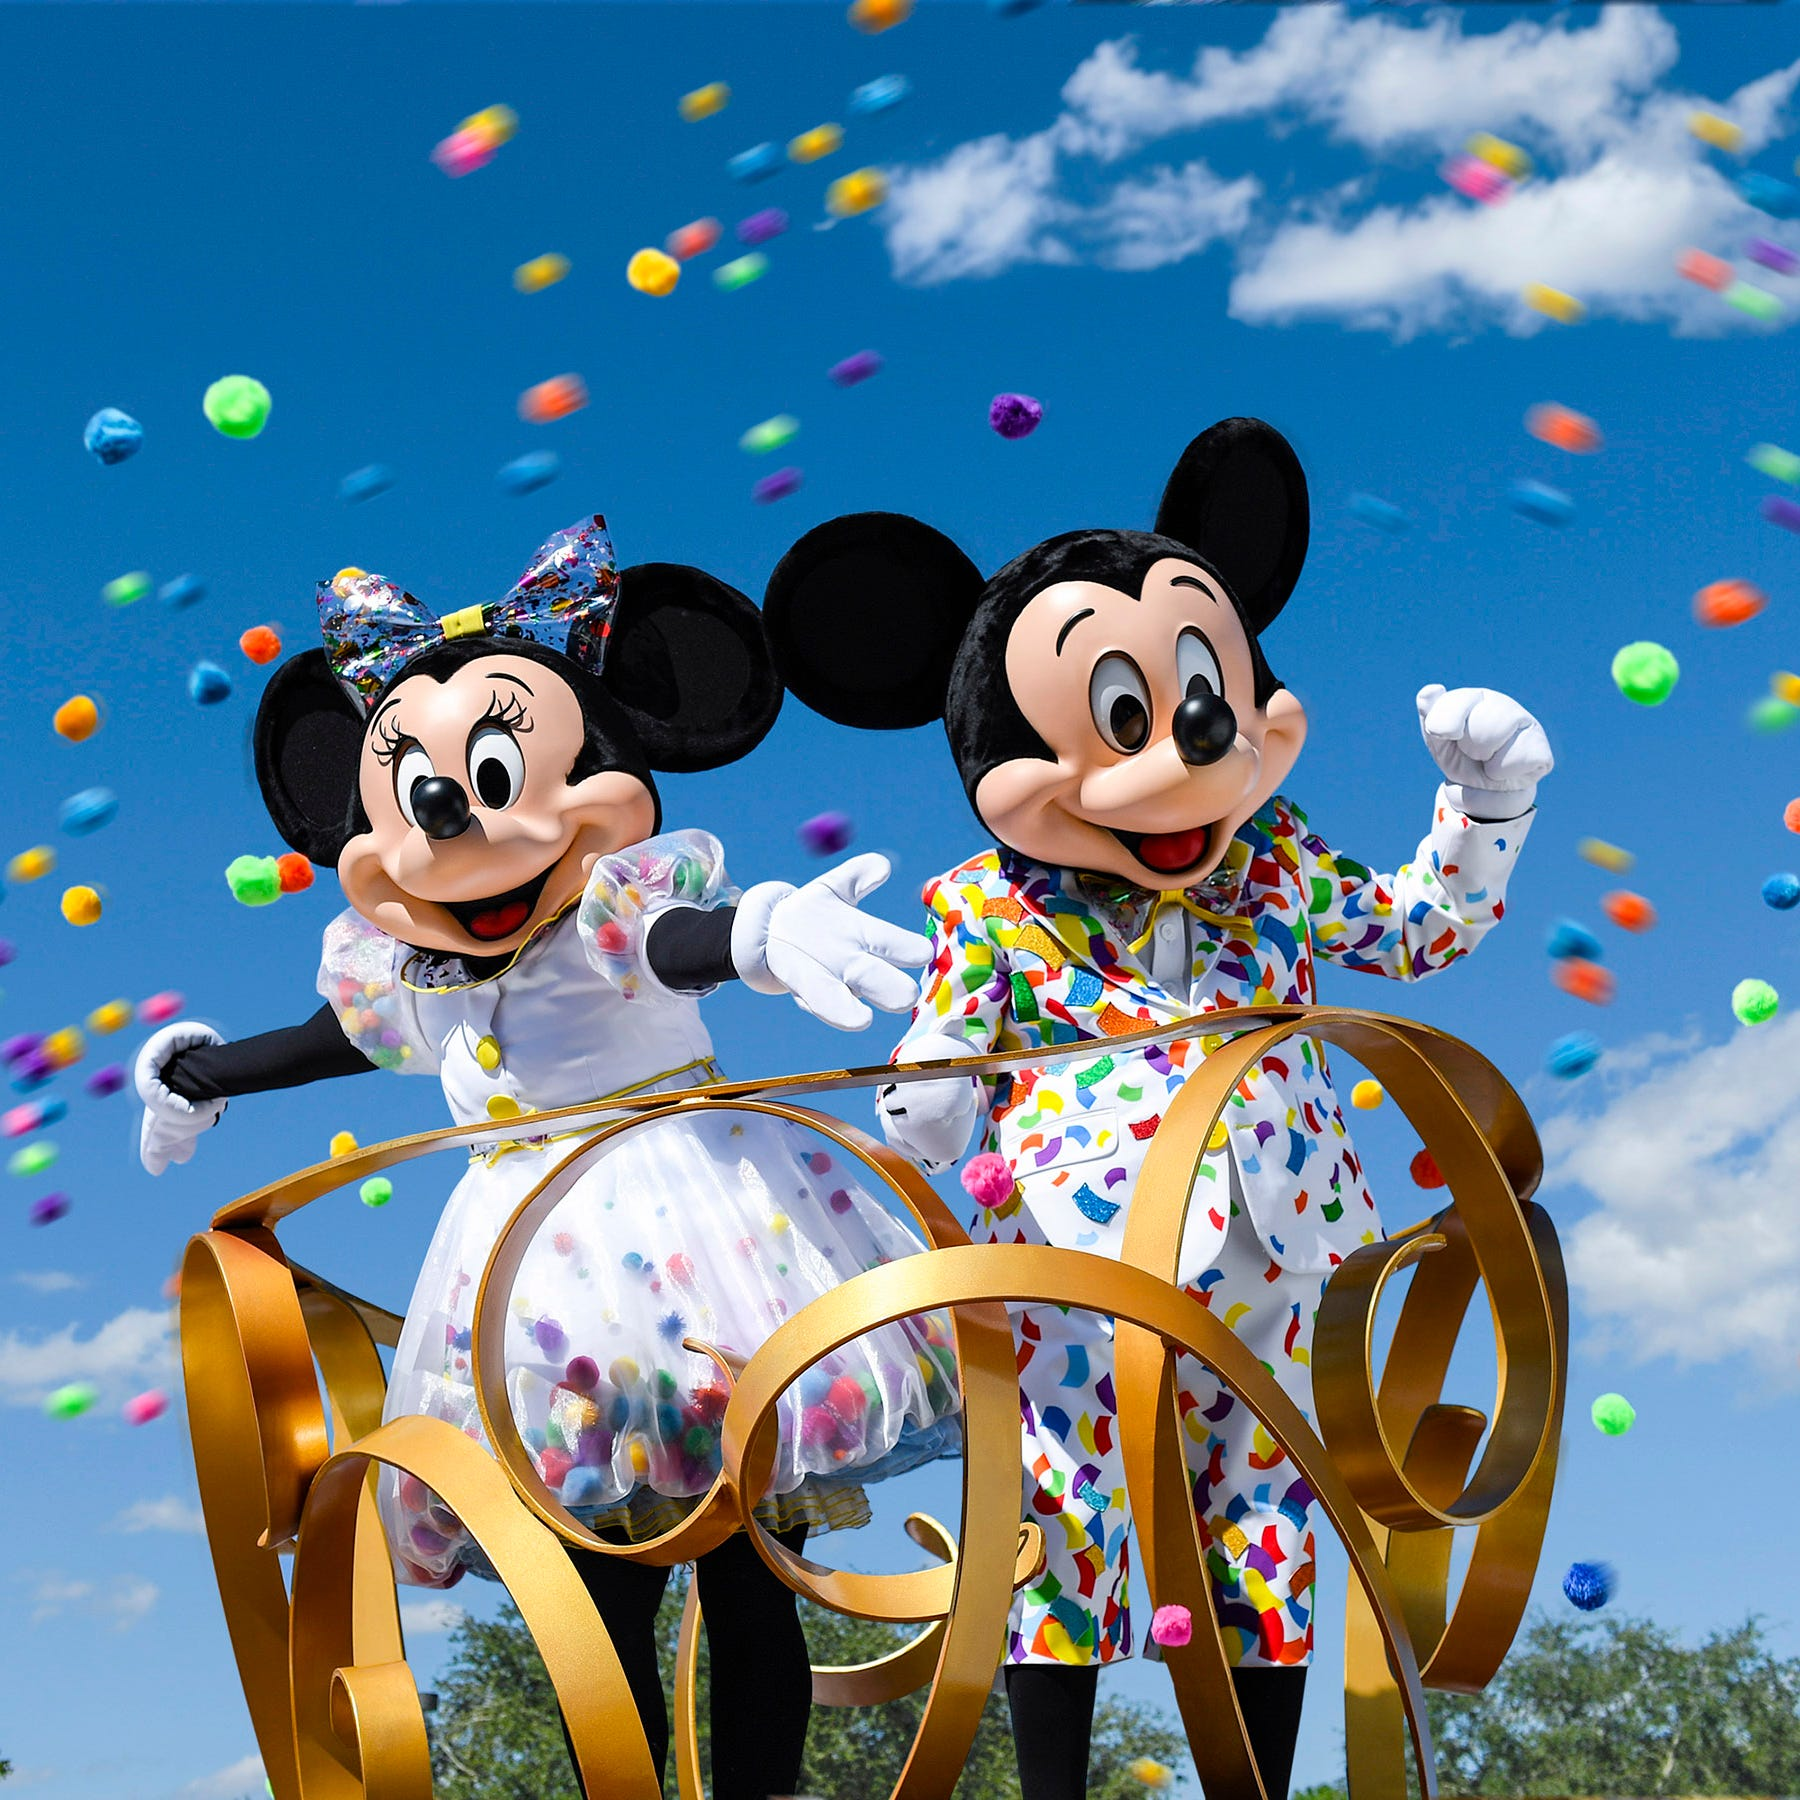 Disneyland's new stroller rules start May 1: Will yours be rejected?